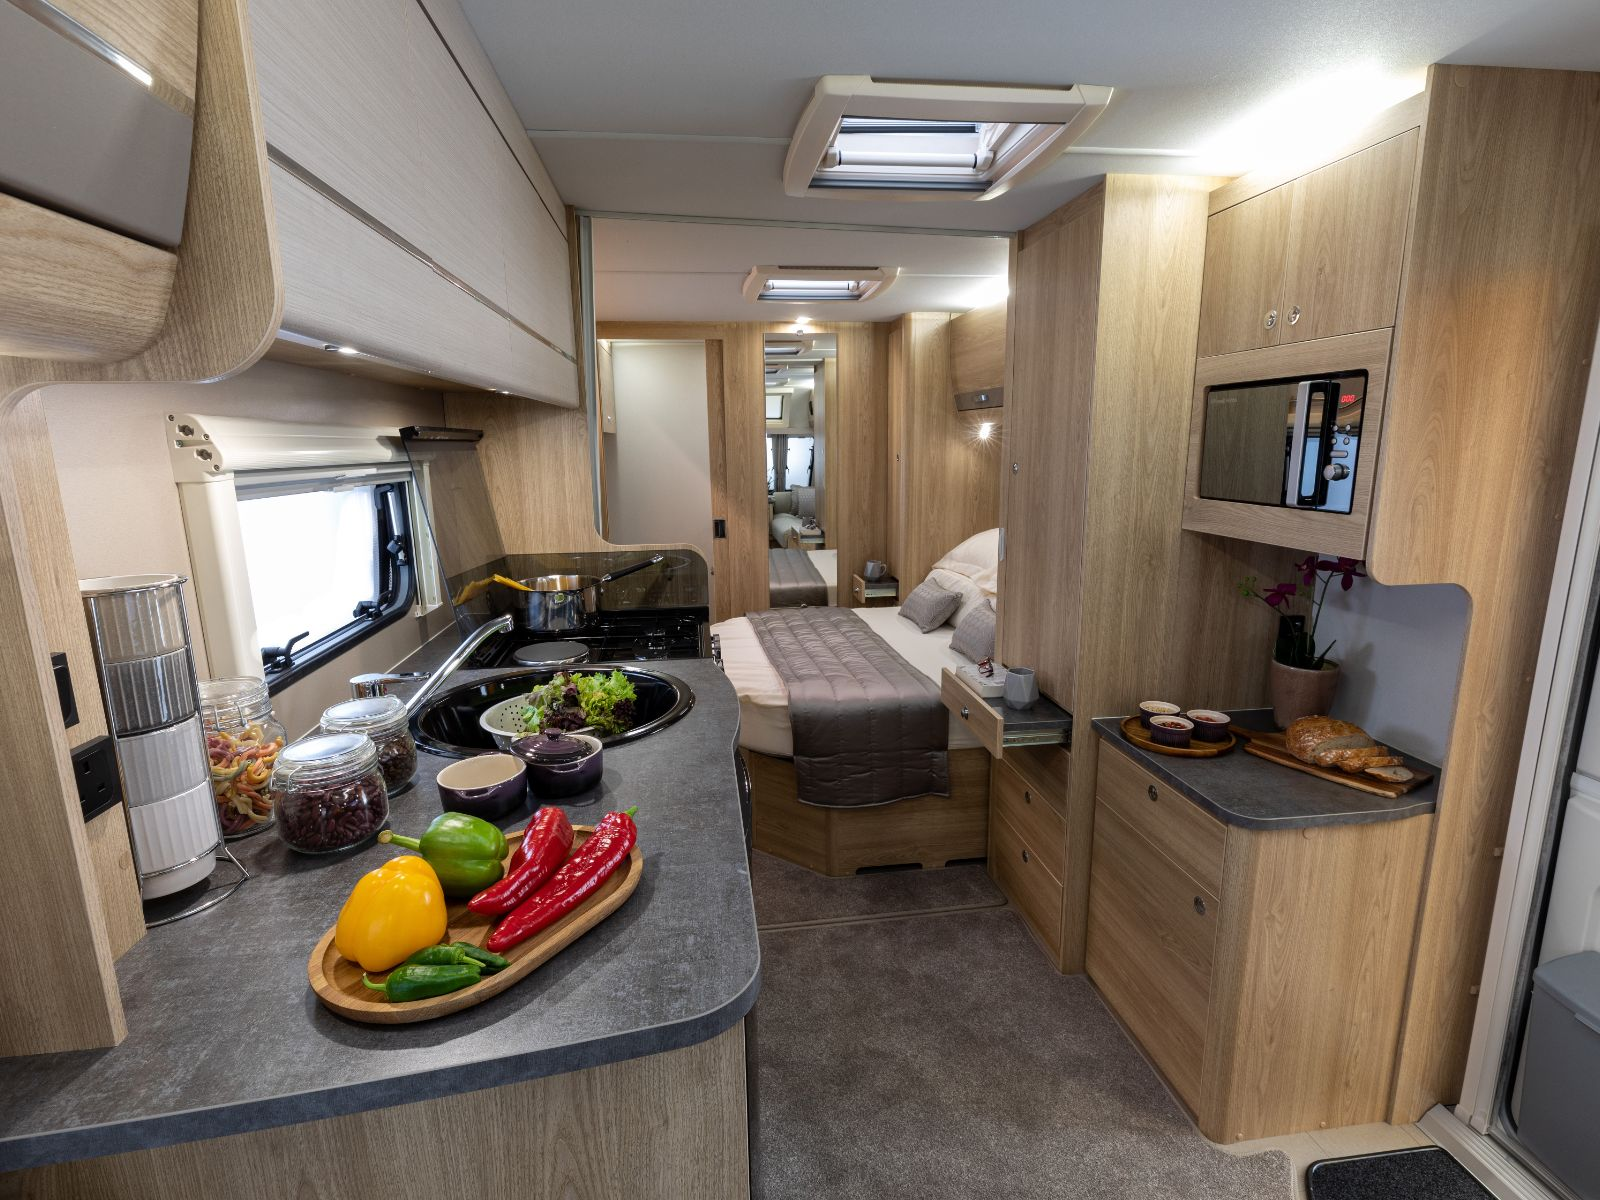 Kitchen layout with overhead storage, microwave and oven with food resting on the counter and a view of the bedroom with double bed'